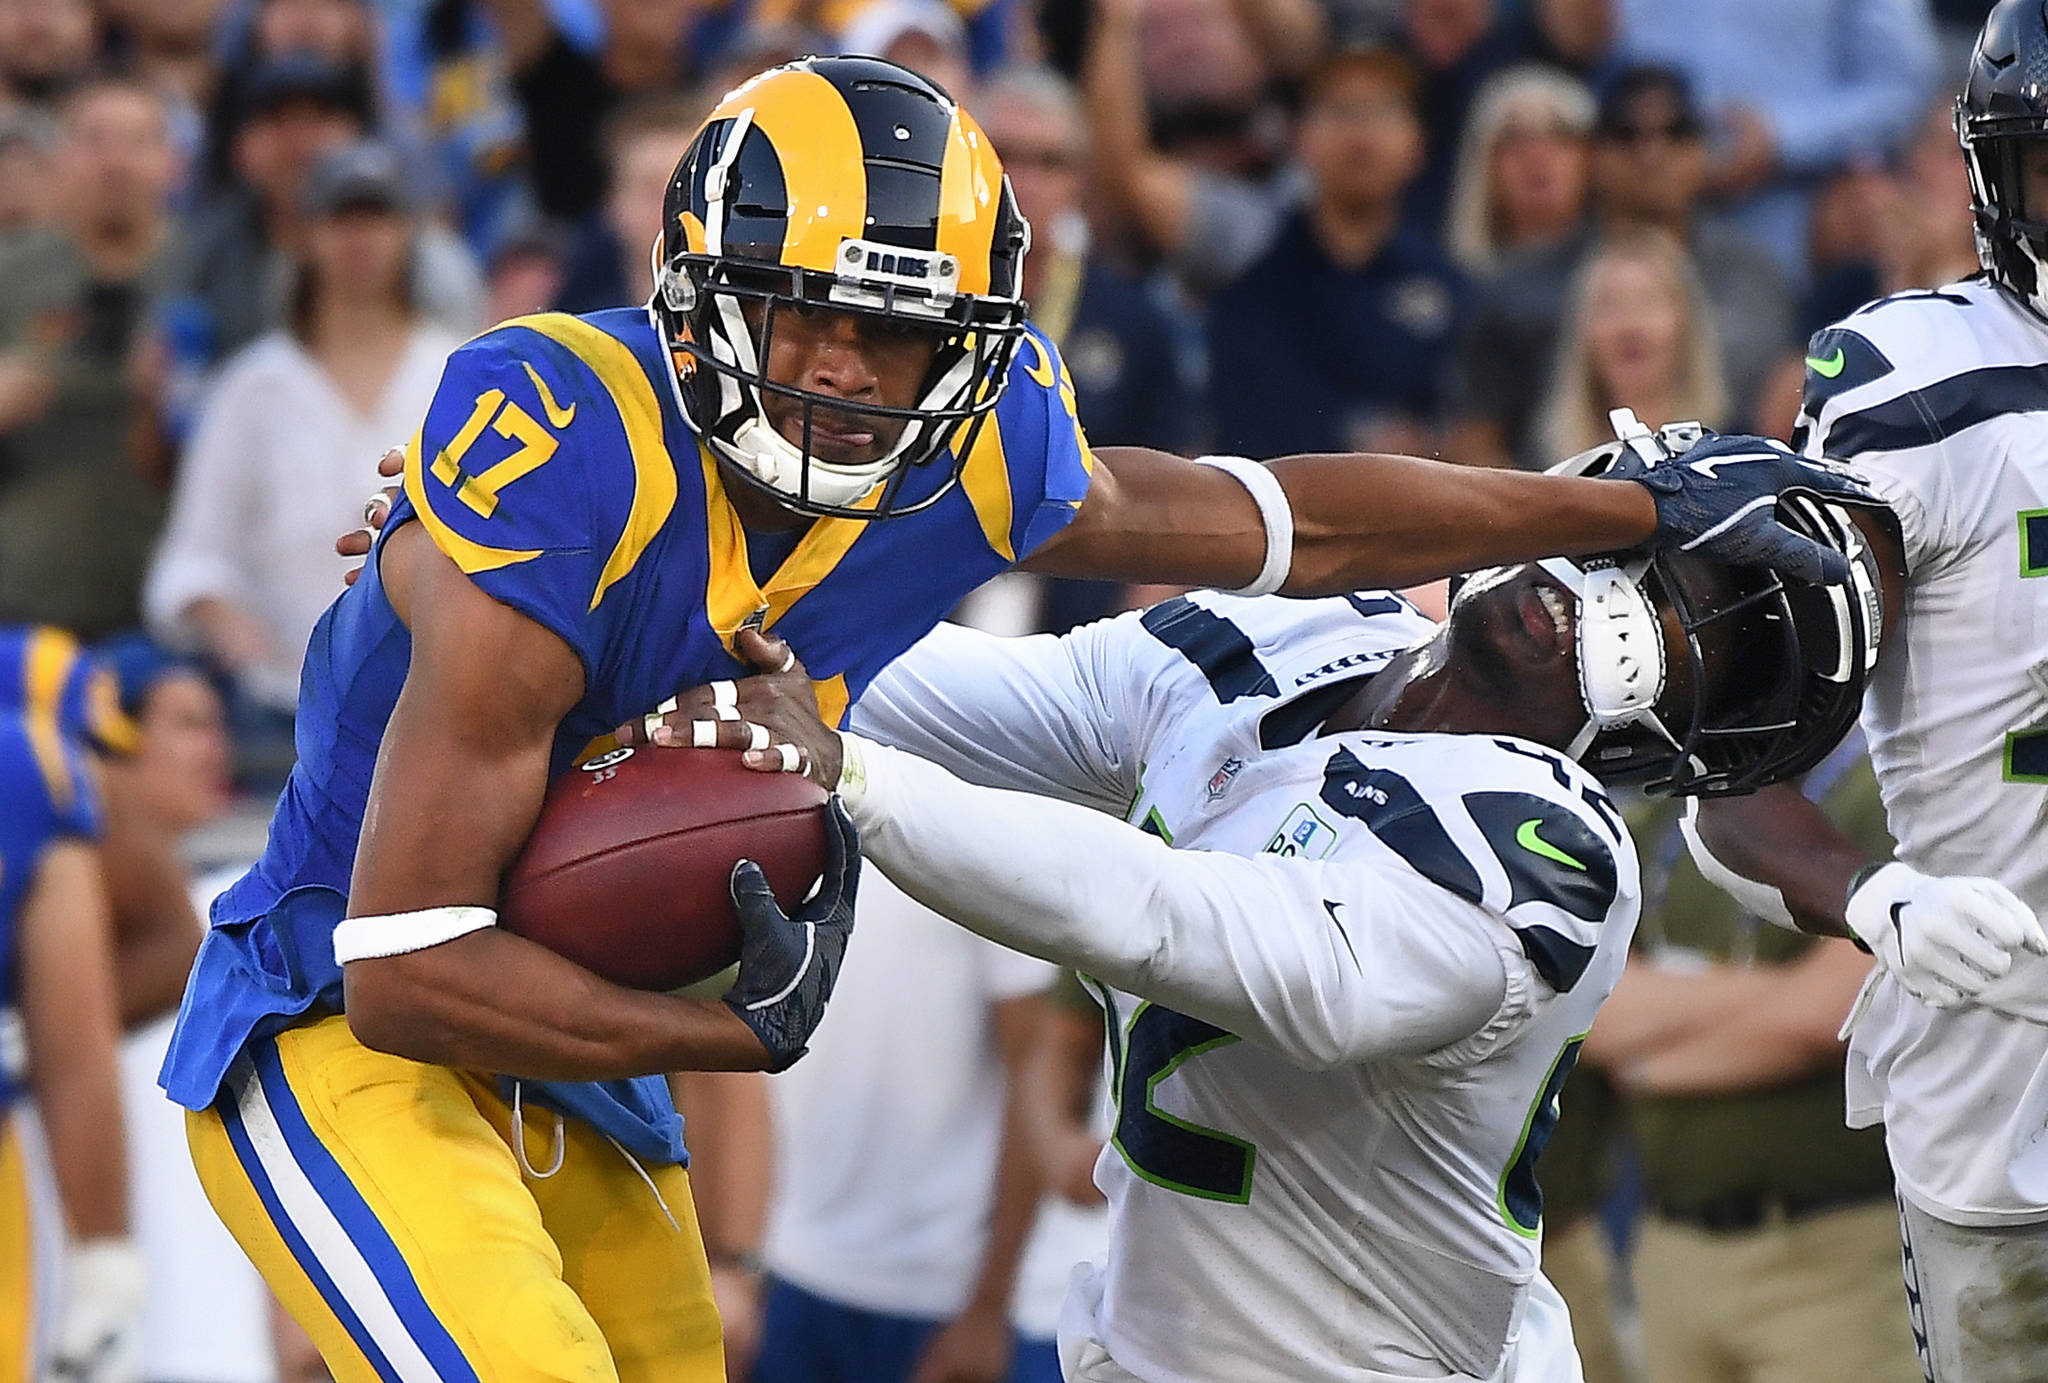 Los Angeles Rams receiver Robert Woods stiff-arms Seattle Seahawks safety Delano Hill to pick up yards in the third quarter on Sunday, Nov. 11, 2018 at the Coliseum in Los Angeles, Calif. (Wally Skalij/Los Angeles Times/TNS)